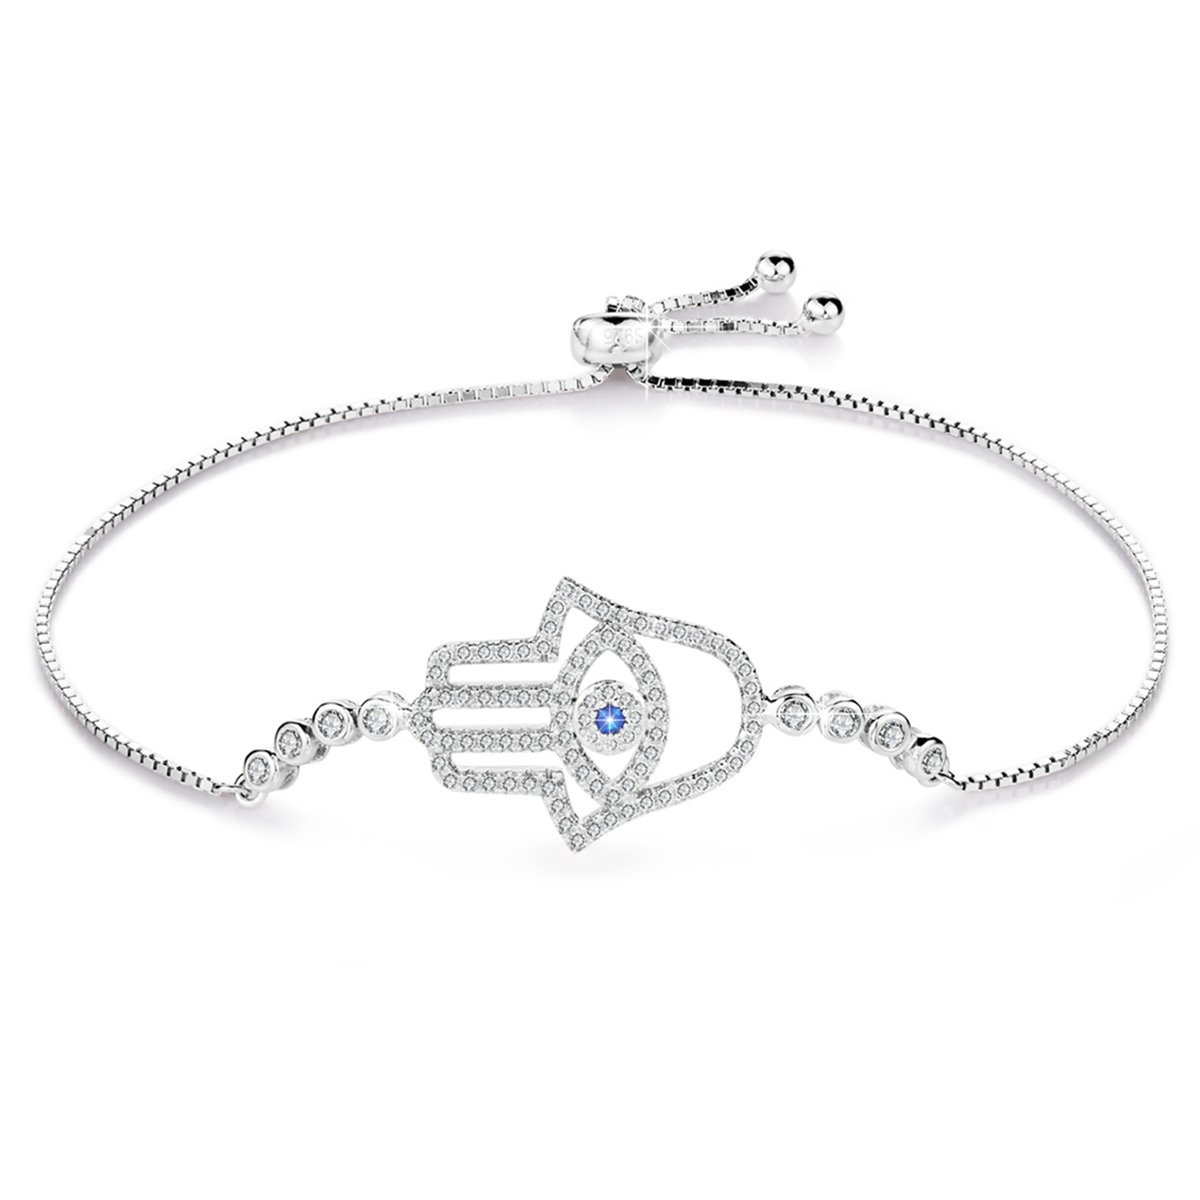 BAMOER 925 Sterling Silver Expandable Lucky Blue Evil Eye Chain Bracelet with Sparkling Cubic Zirconia for Women Girls Style 8 by BAMOER